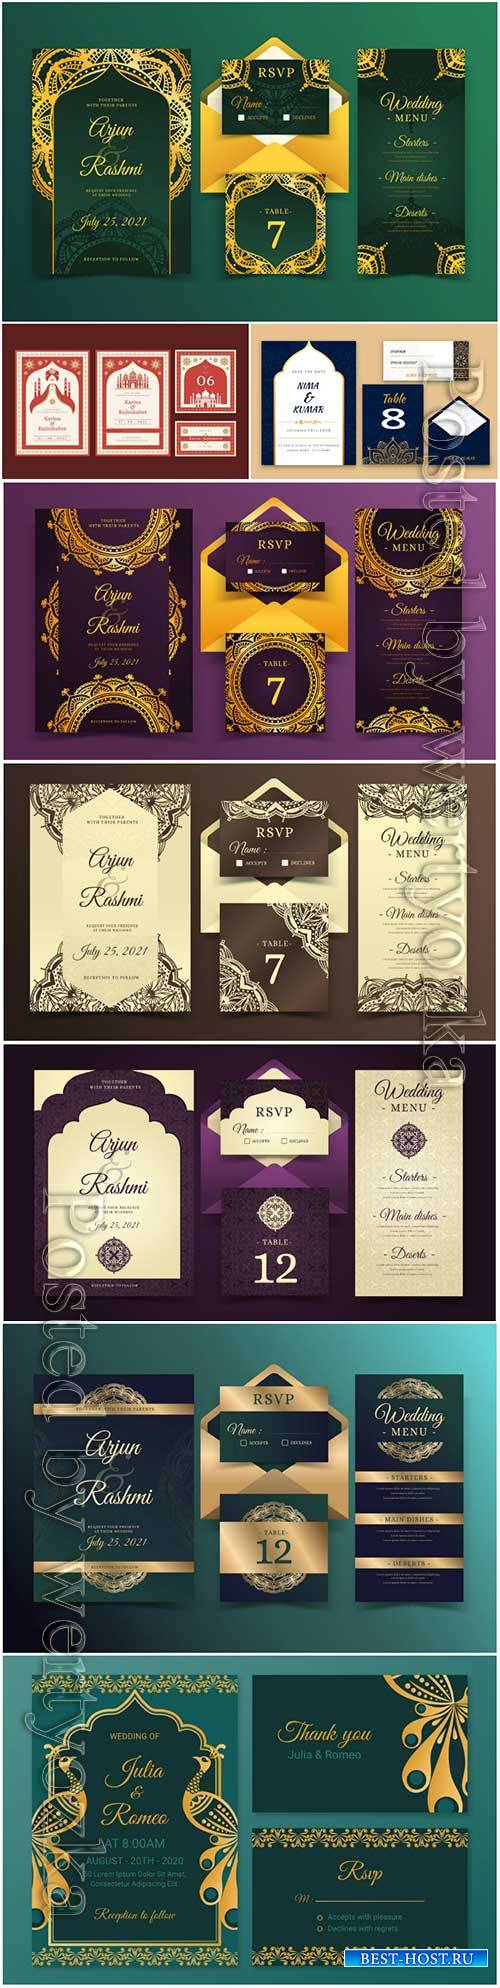 Elegant indian wedding stationery templates vector illustration